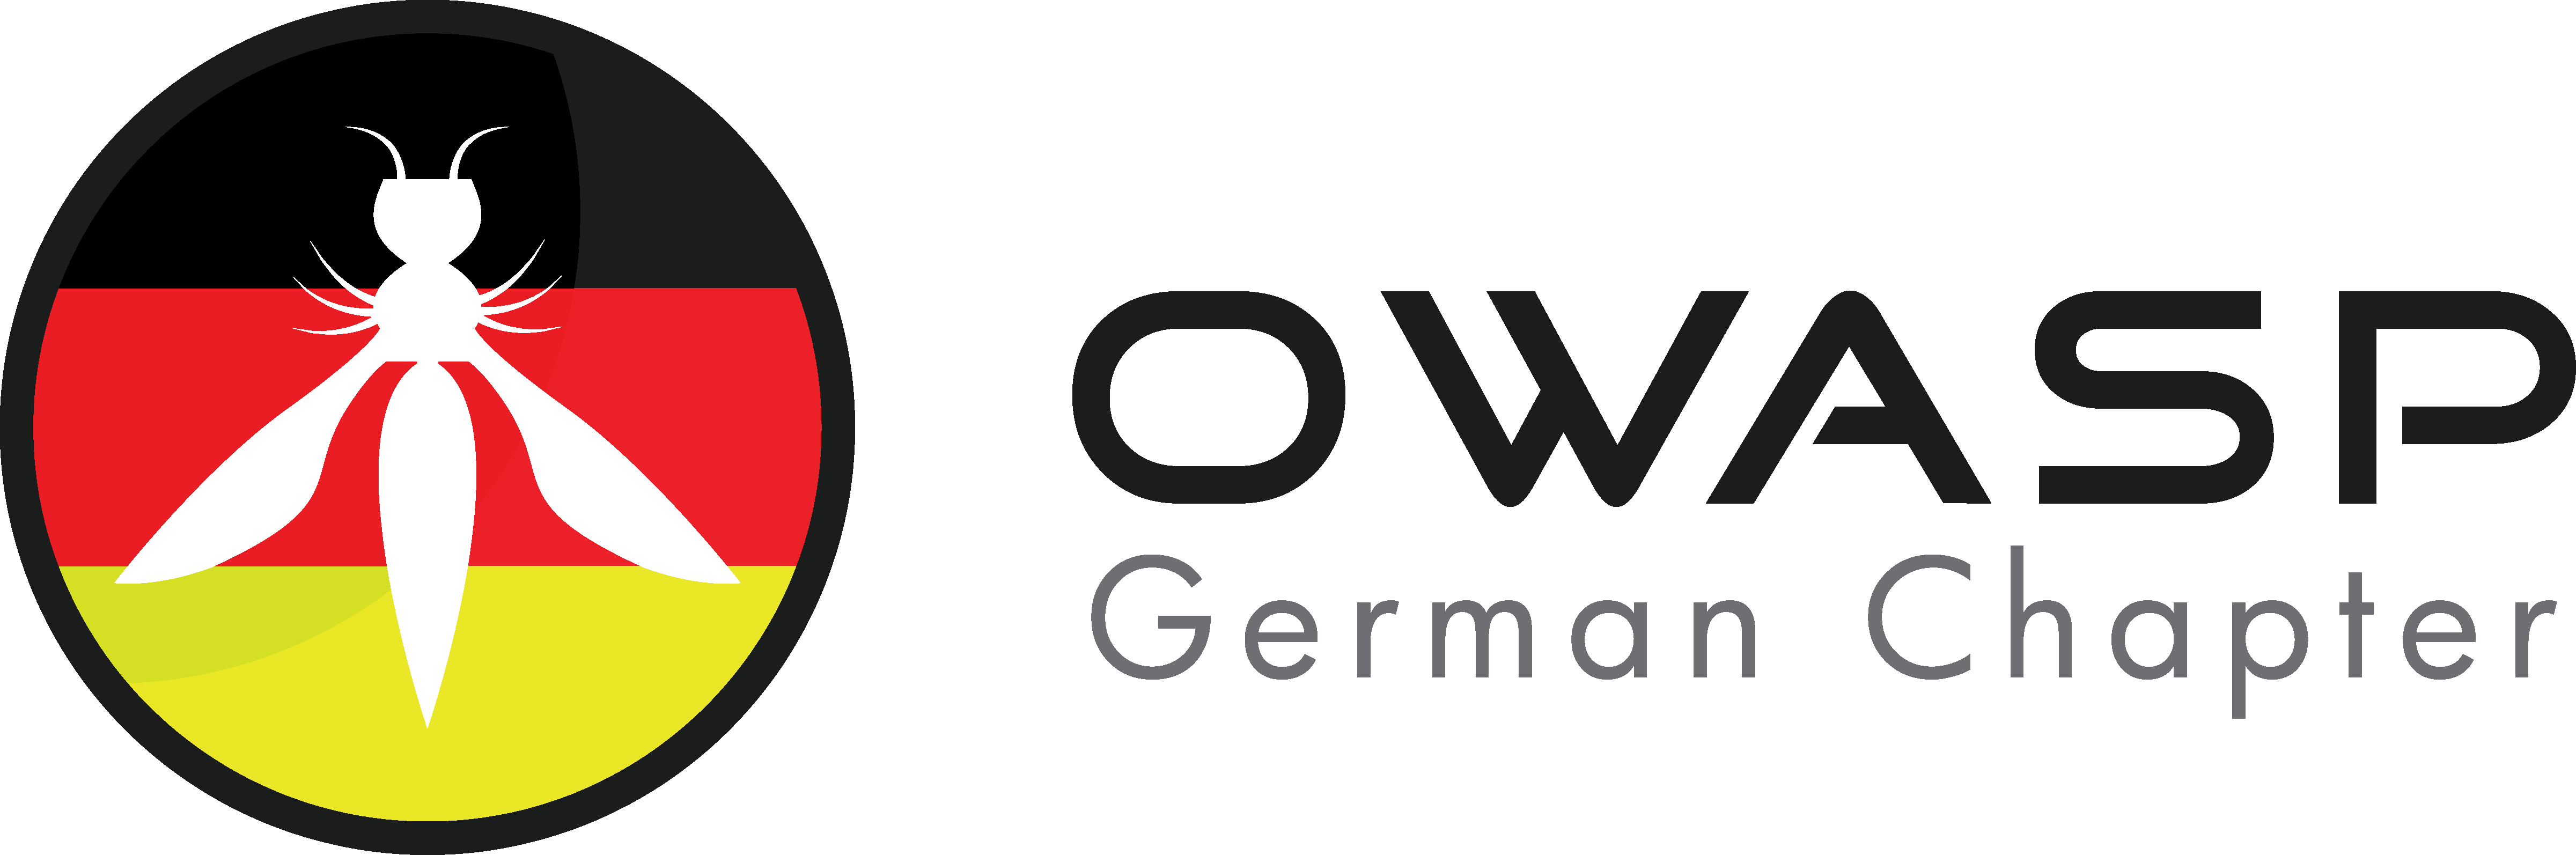 German Chapter Logo